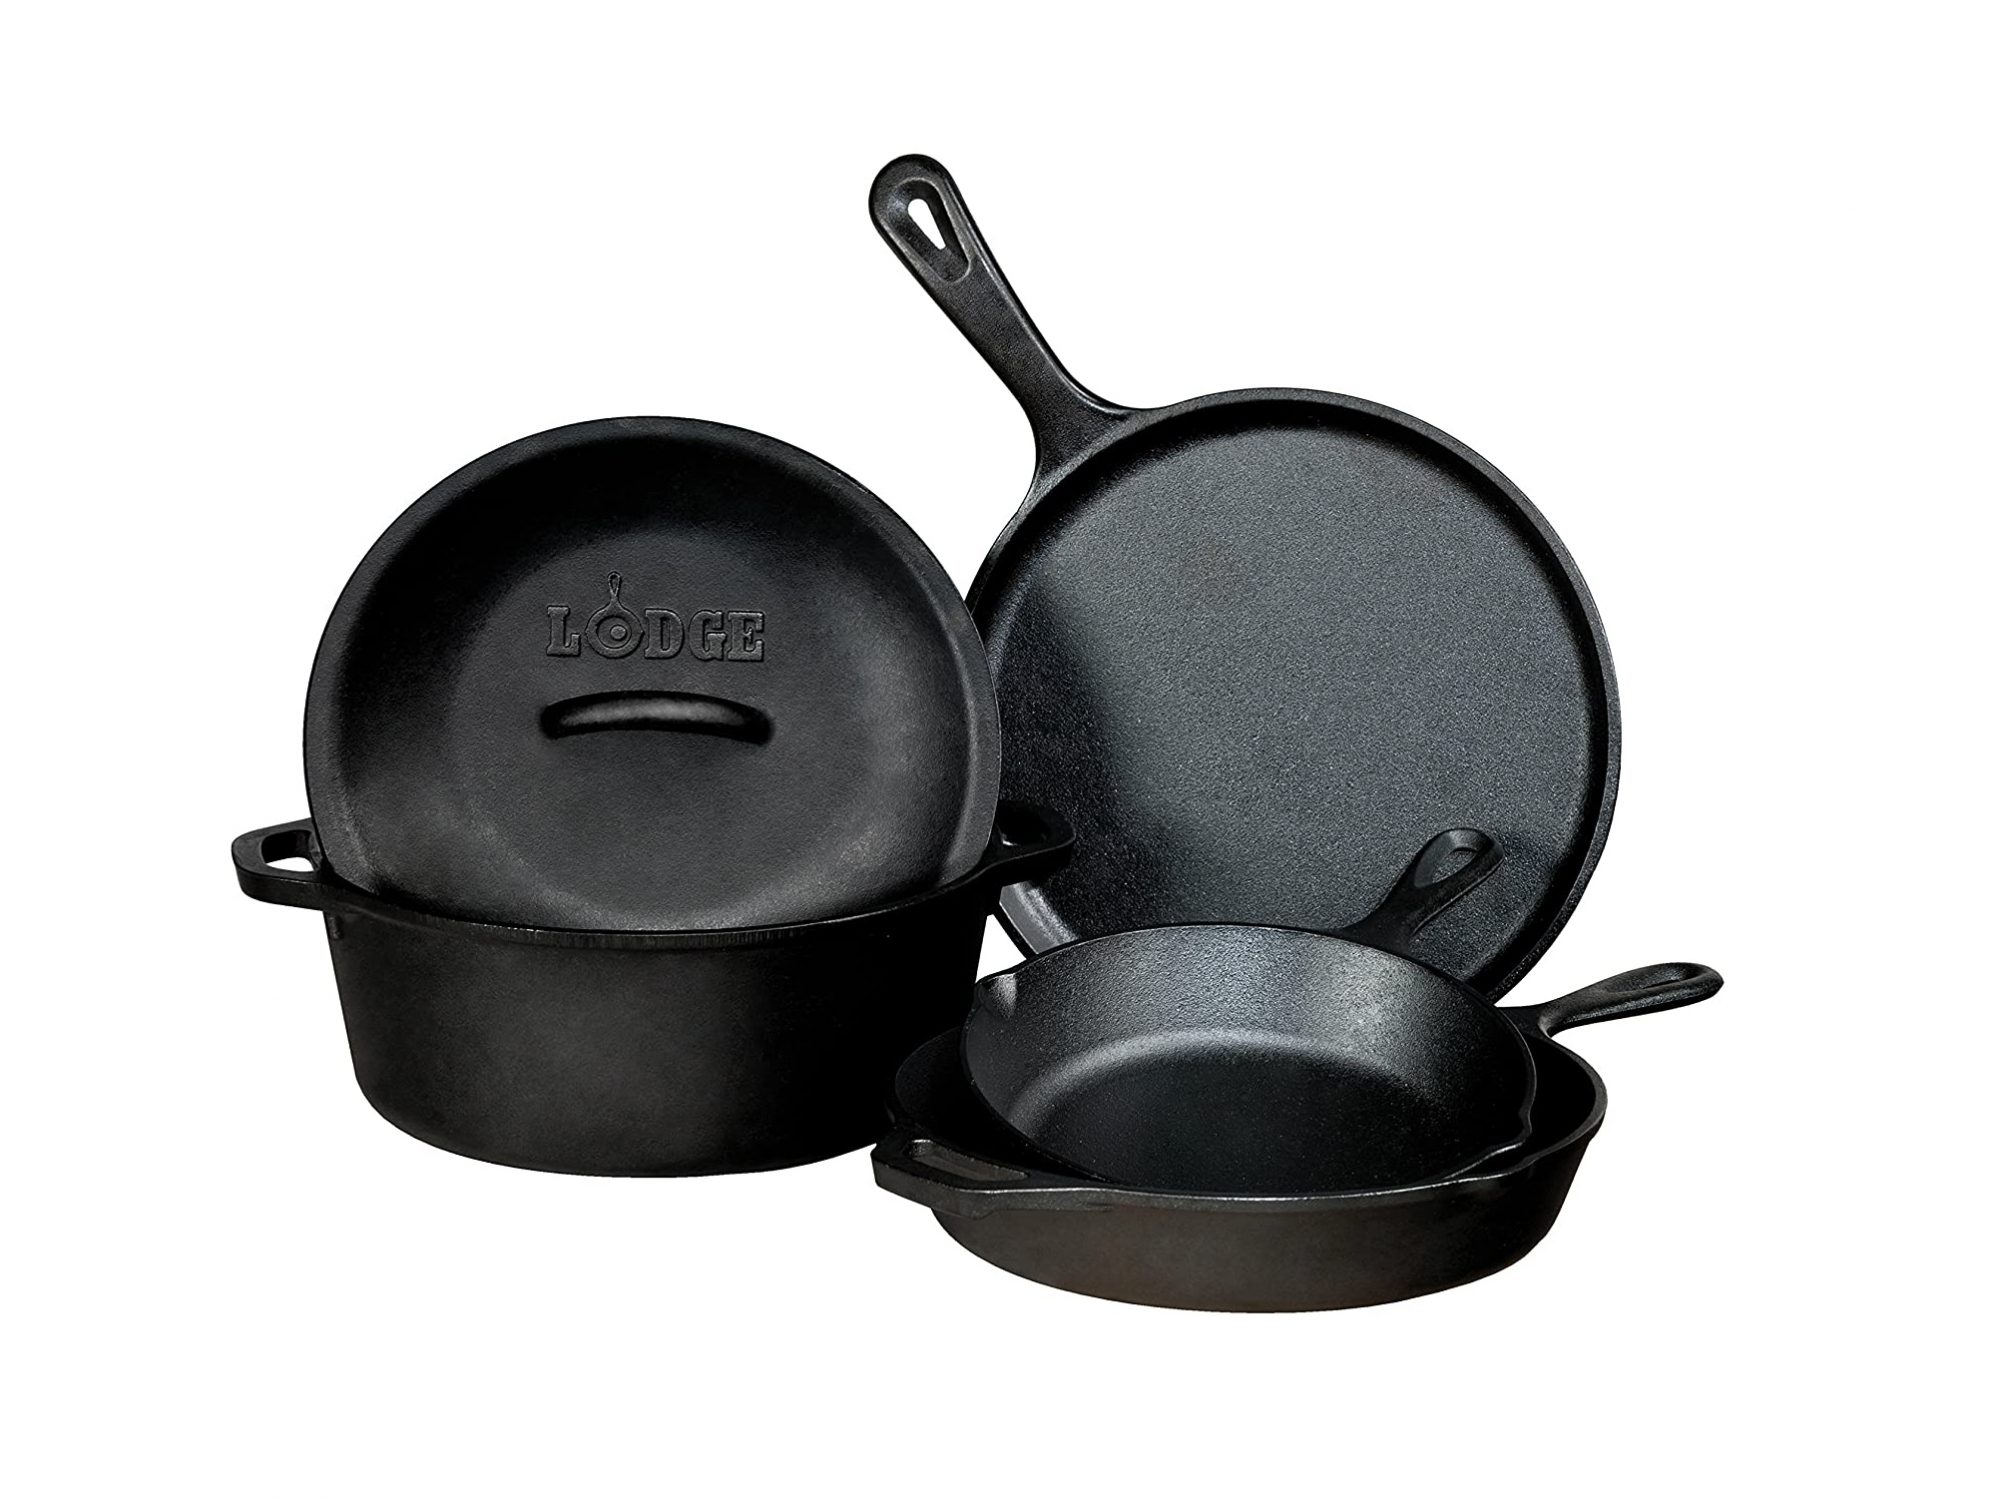 Lodge Cast-Iron Cookware Set